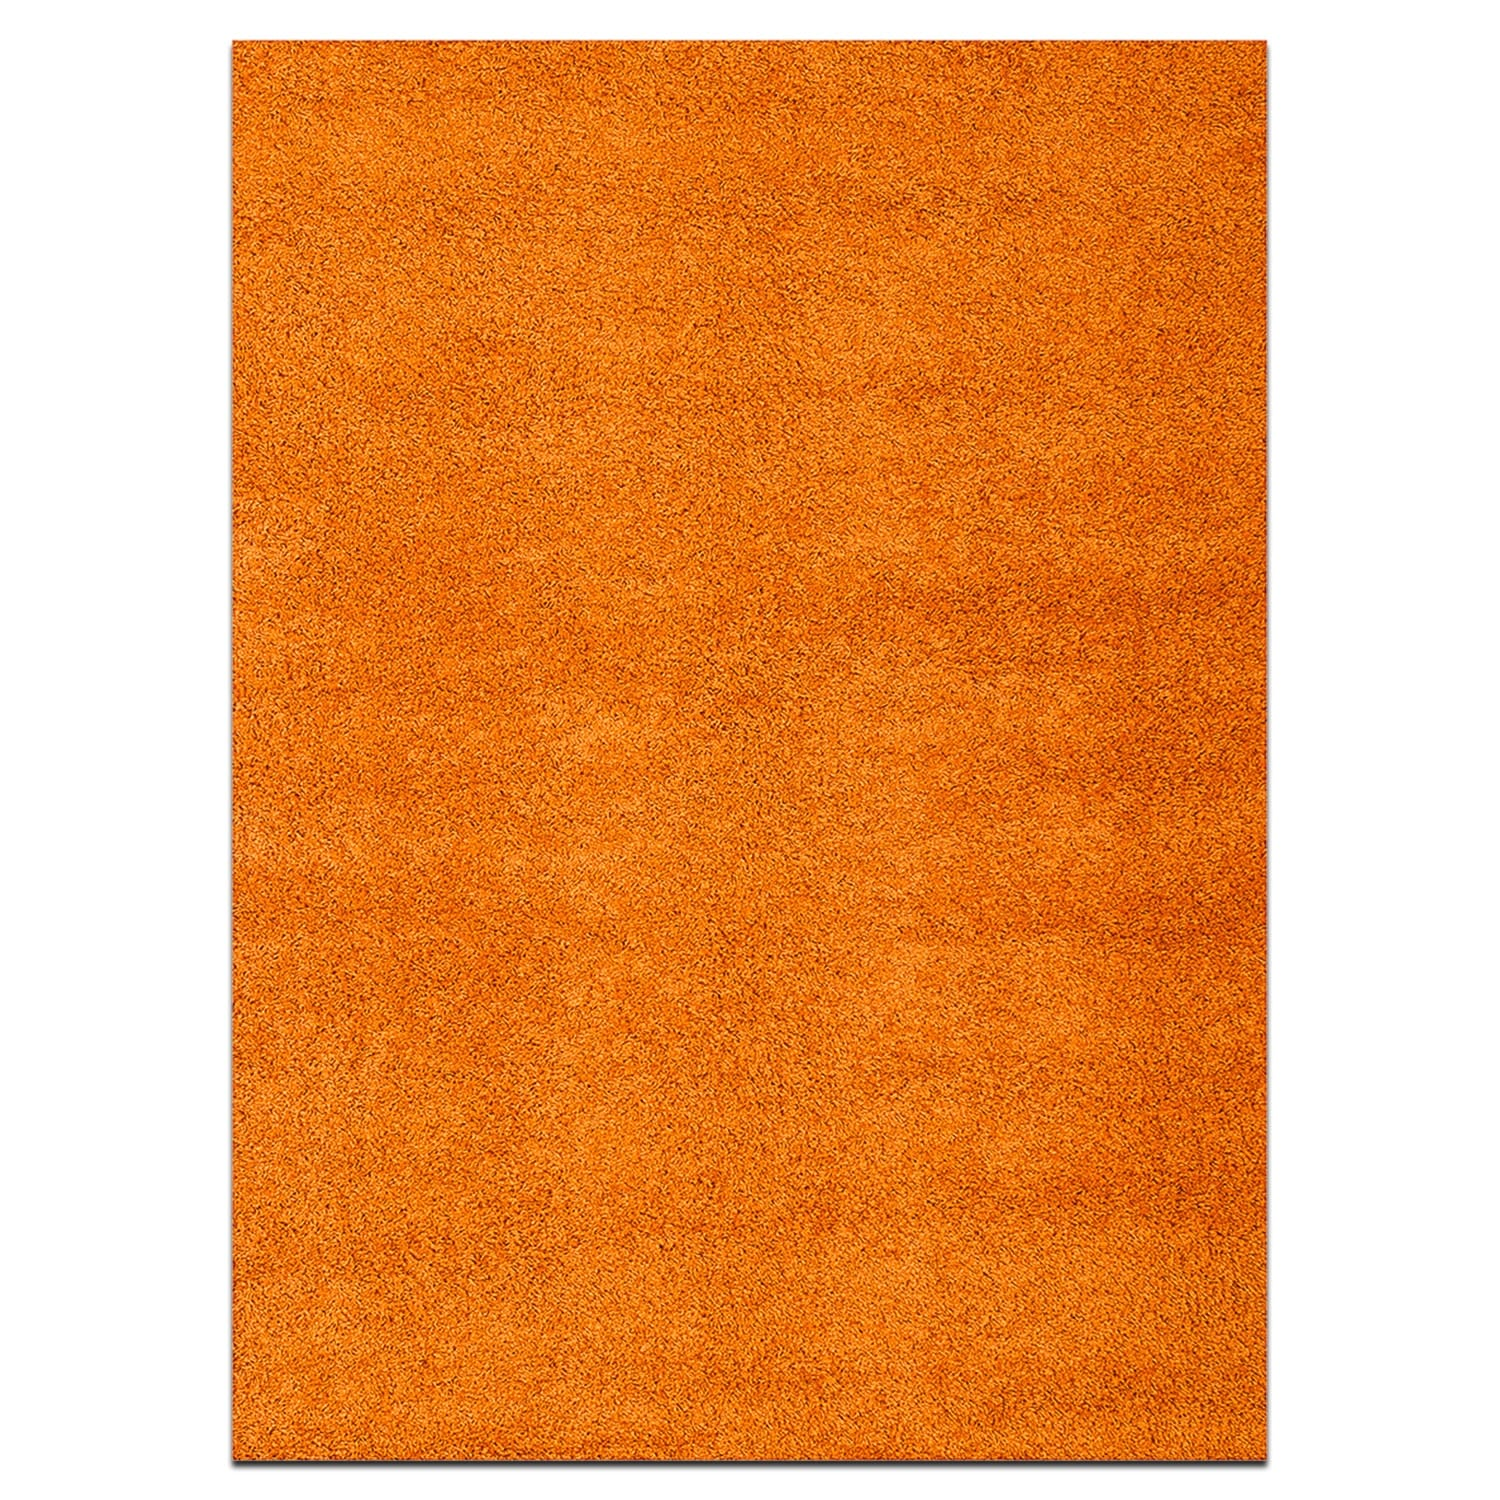 Rugs - Domino Orange Shag Area Rug (5' x 8')